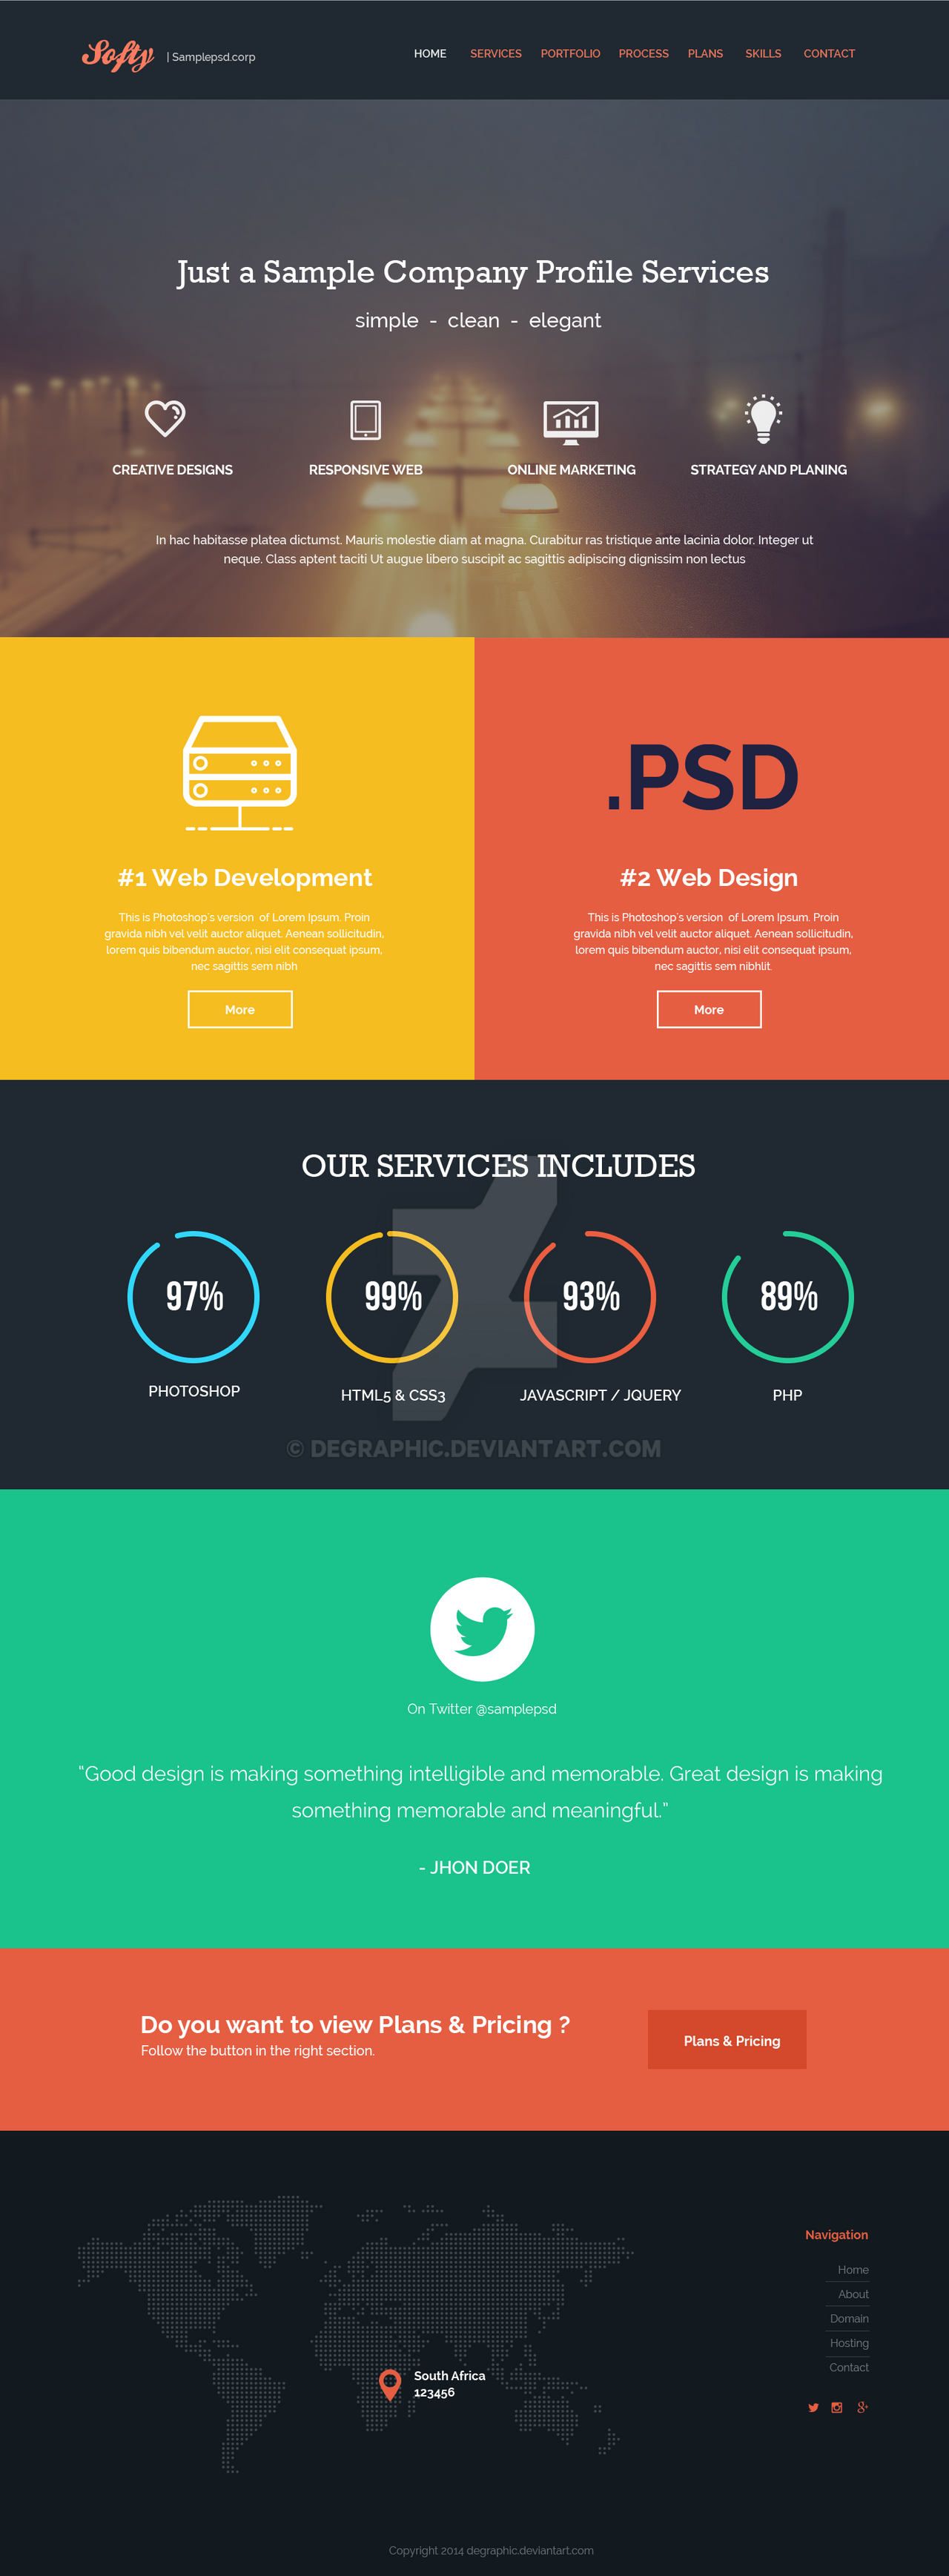 Sosfty_sample_design_PSD by degraphic